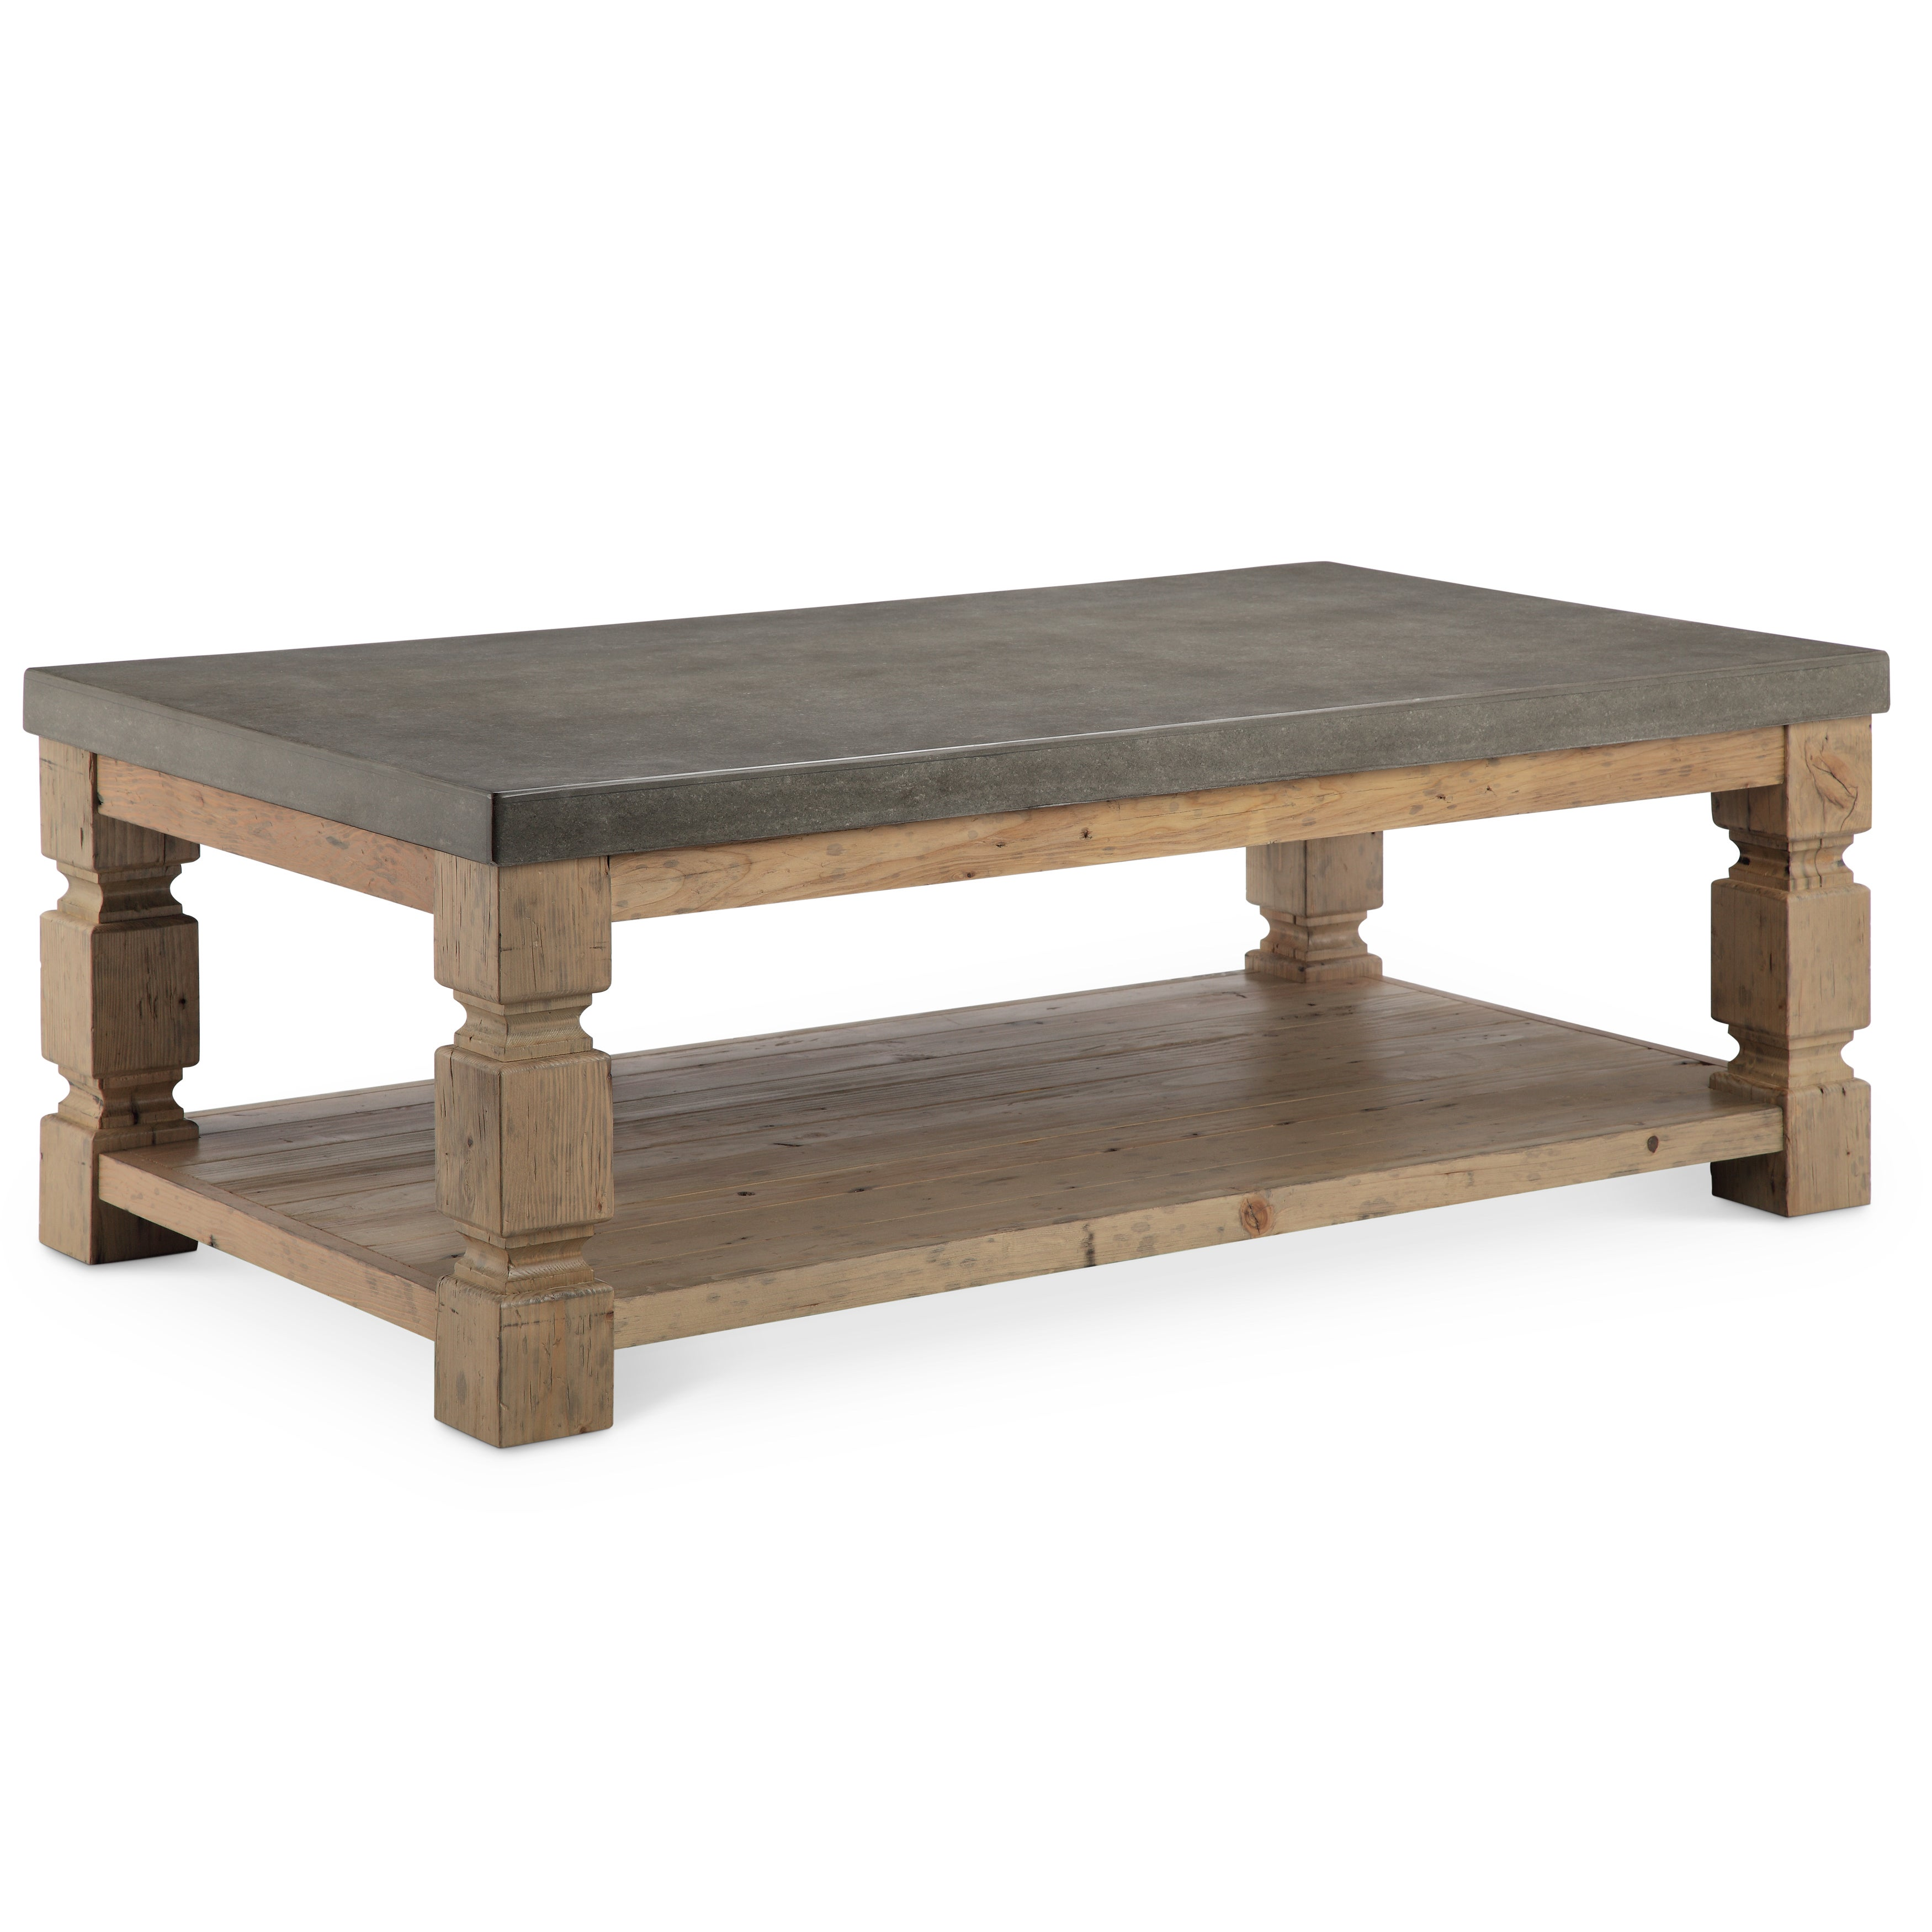 O Brian Rustic Aged Zinc Concrete and Ash Wood Coffee Table Free